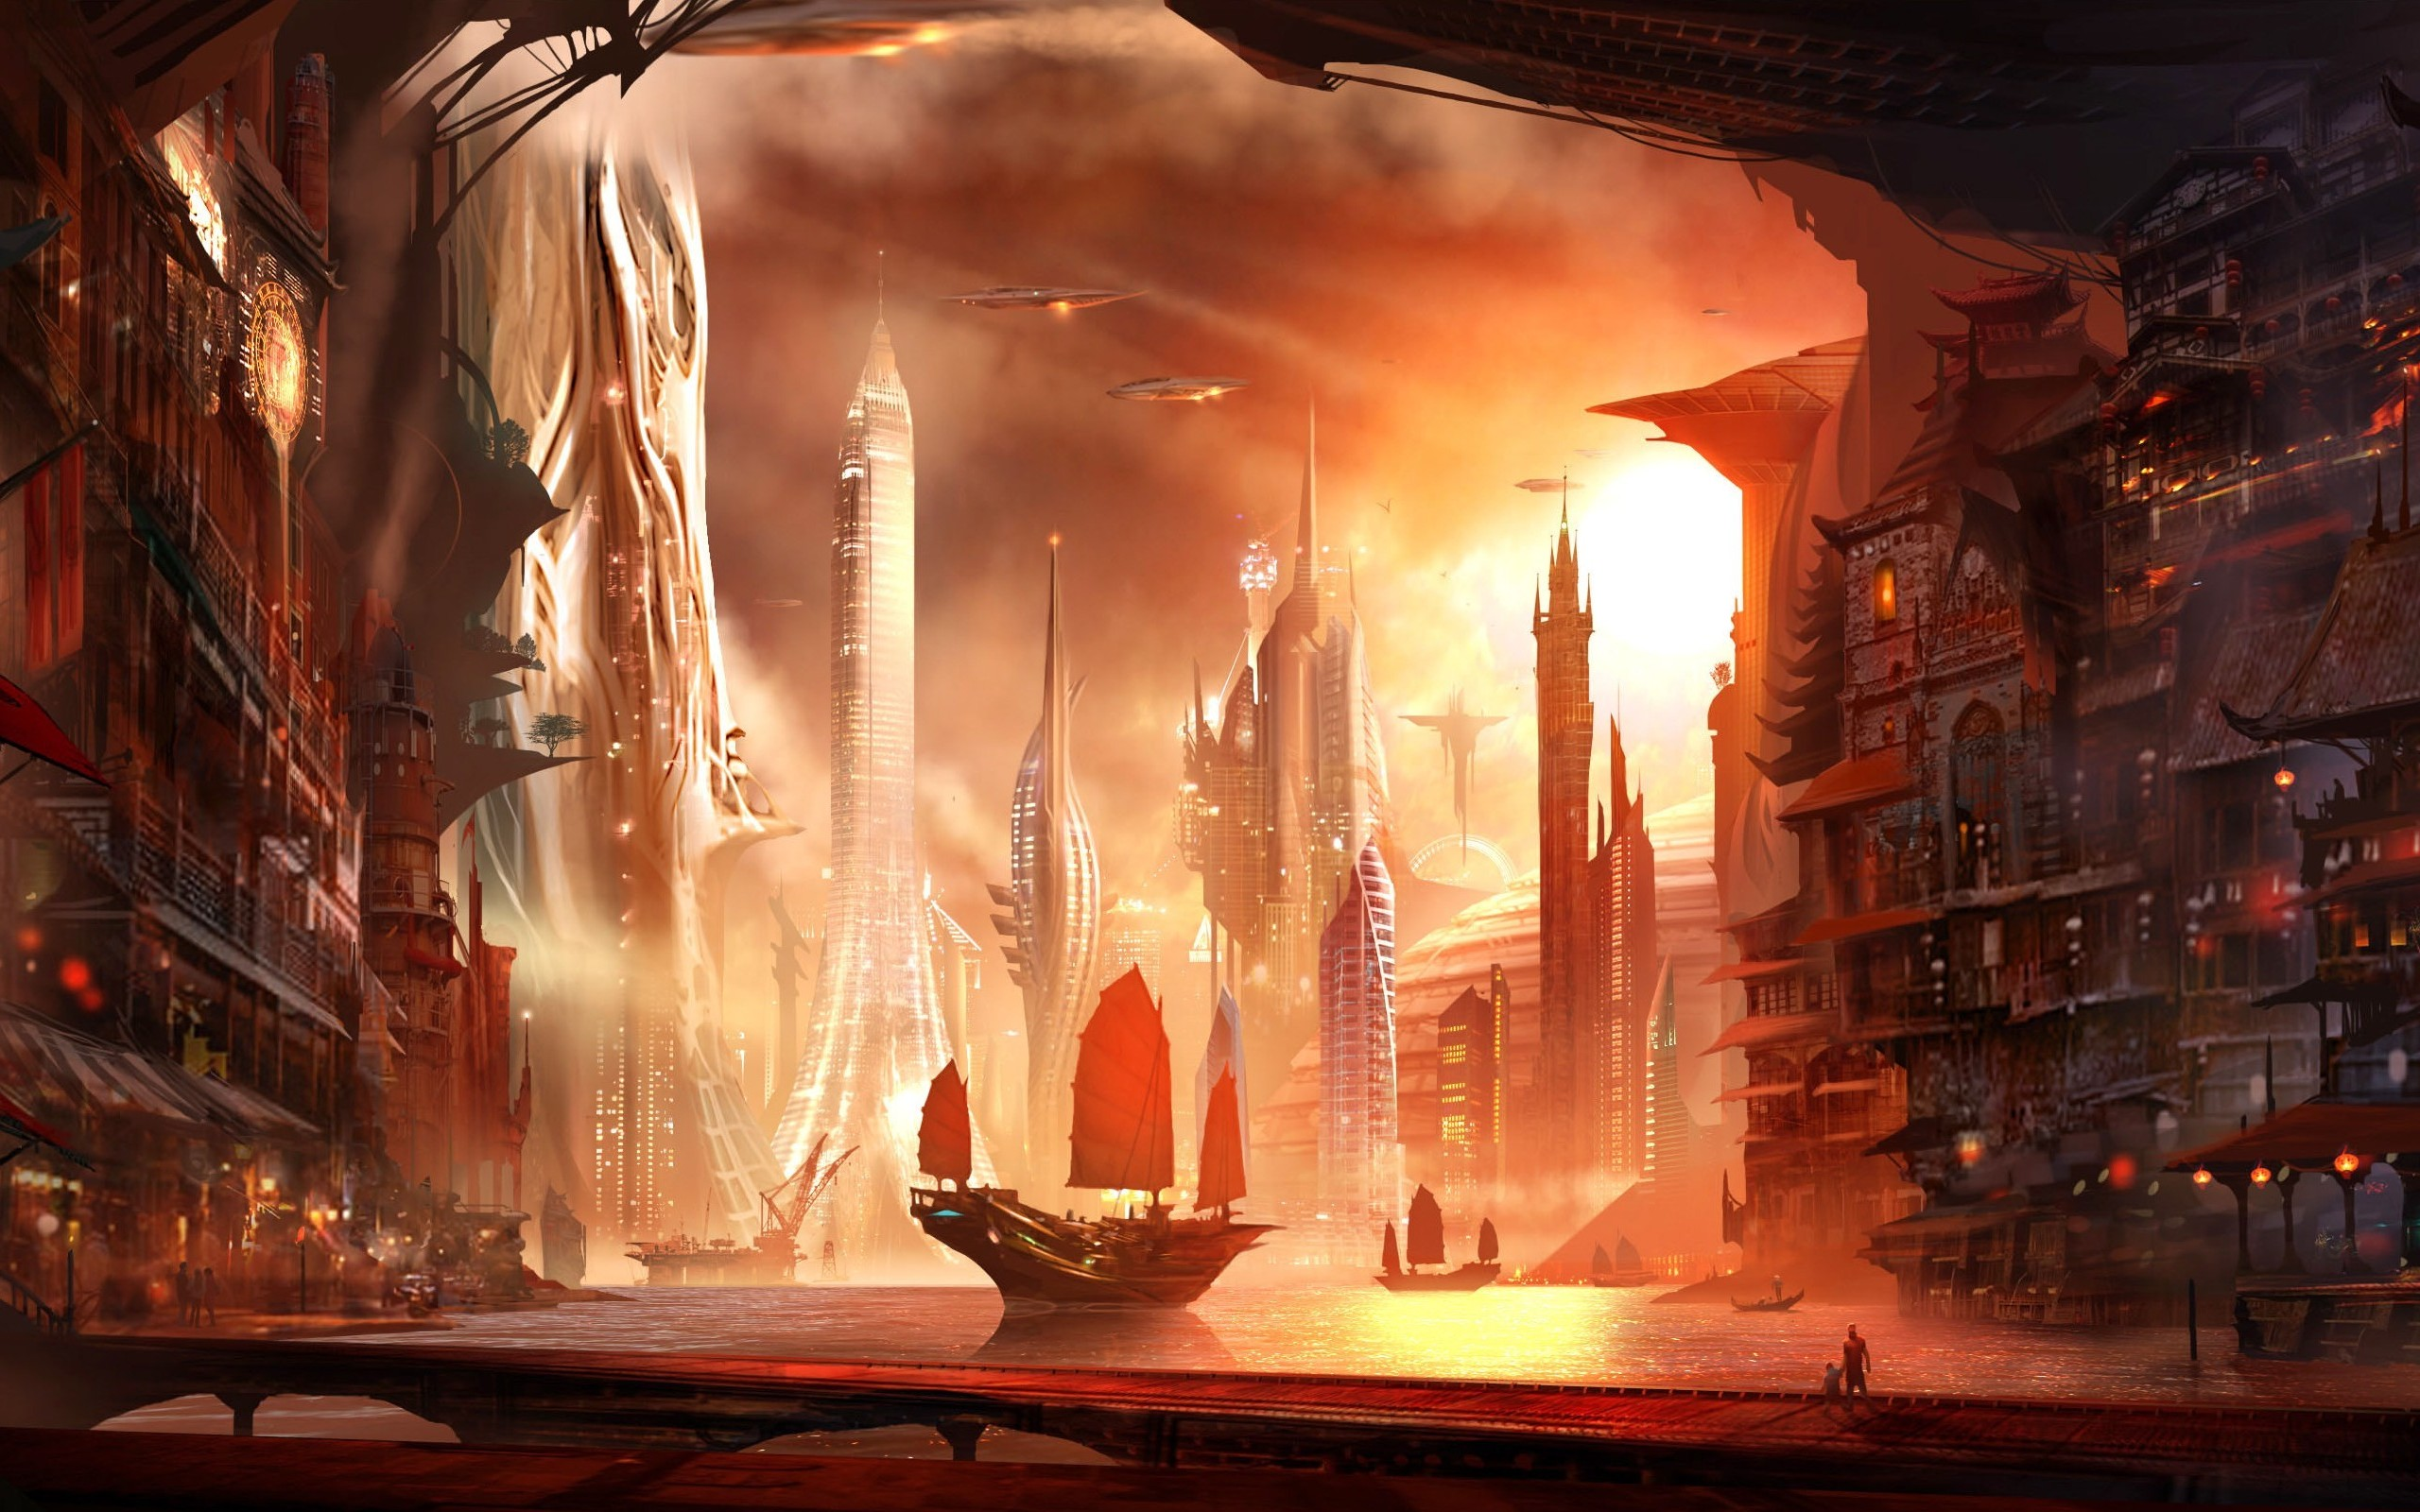 Fantasy City Wallpaper Hd: Fantasy City Hd Wallpaper 2560x1600